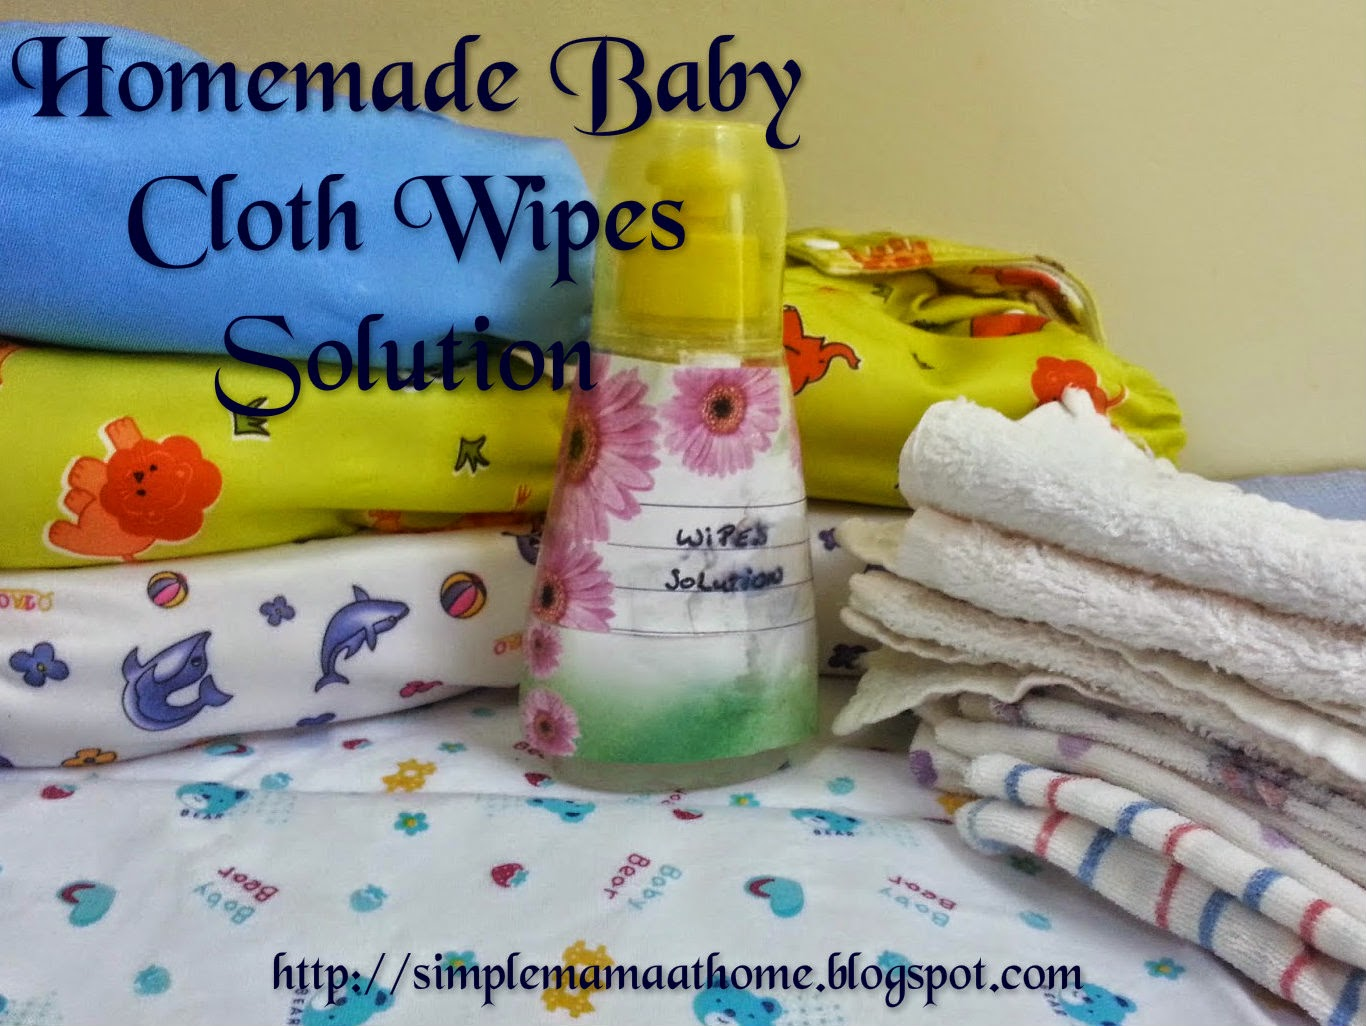 Homemade Baby Cloth Wipes Solution